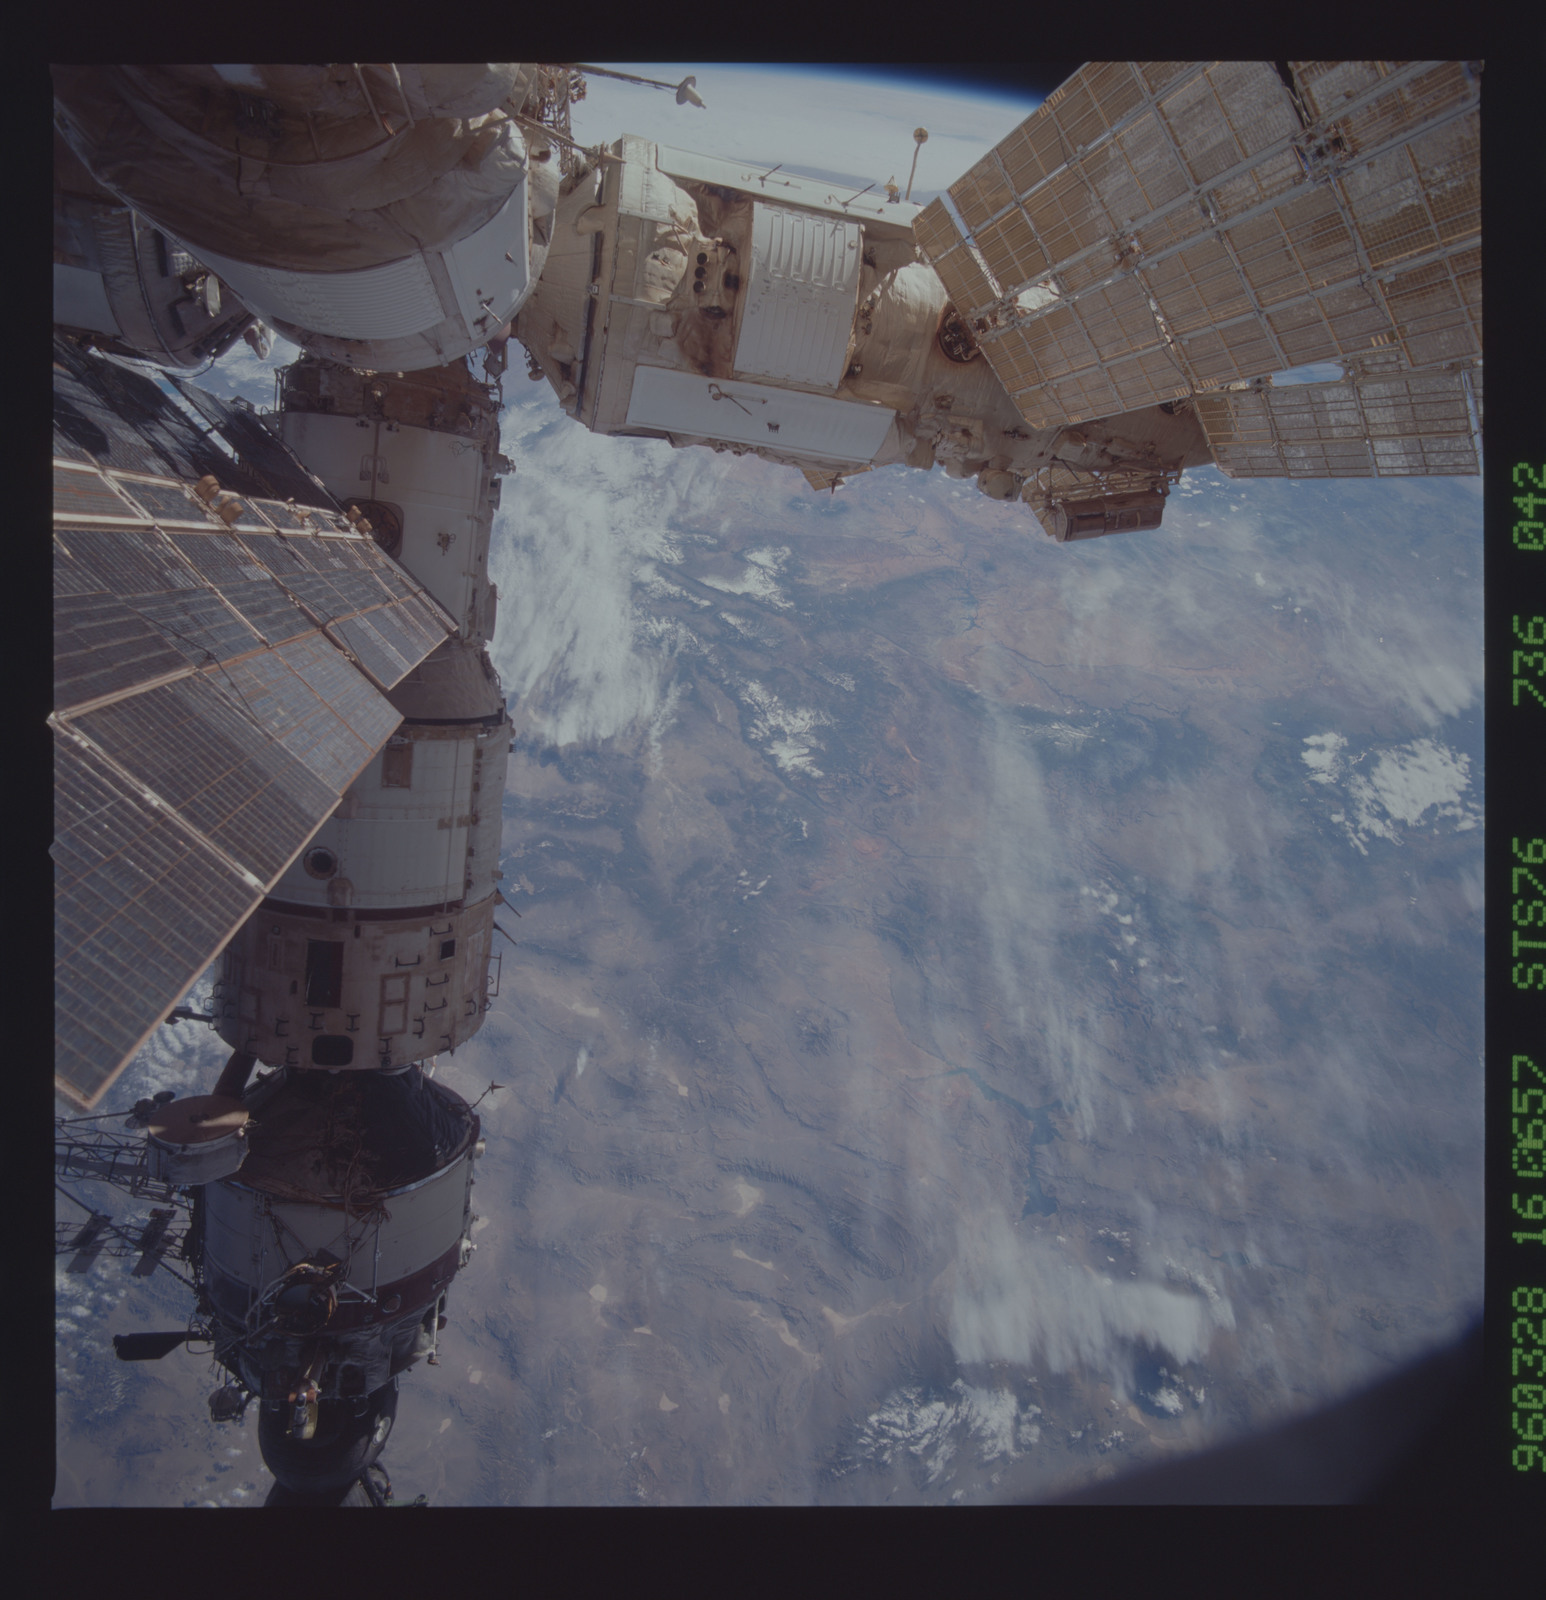 STS076-736-042 - STS-076 - Mir Space Station views taken during STS-76 mission